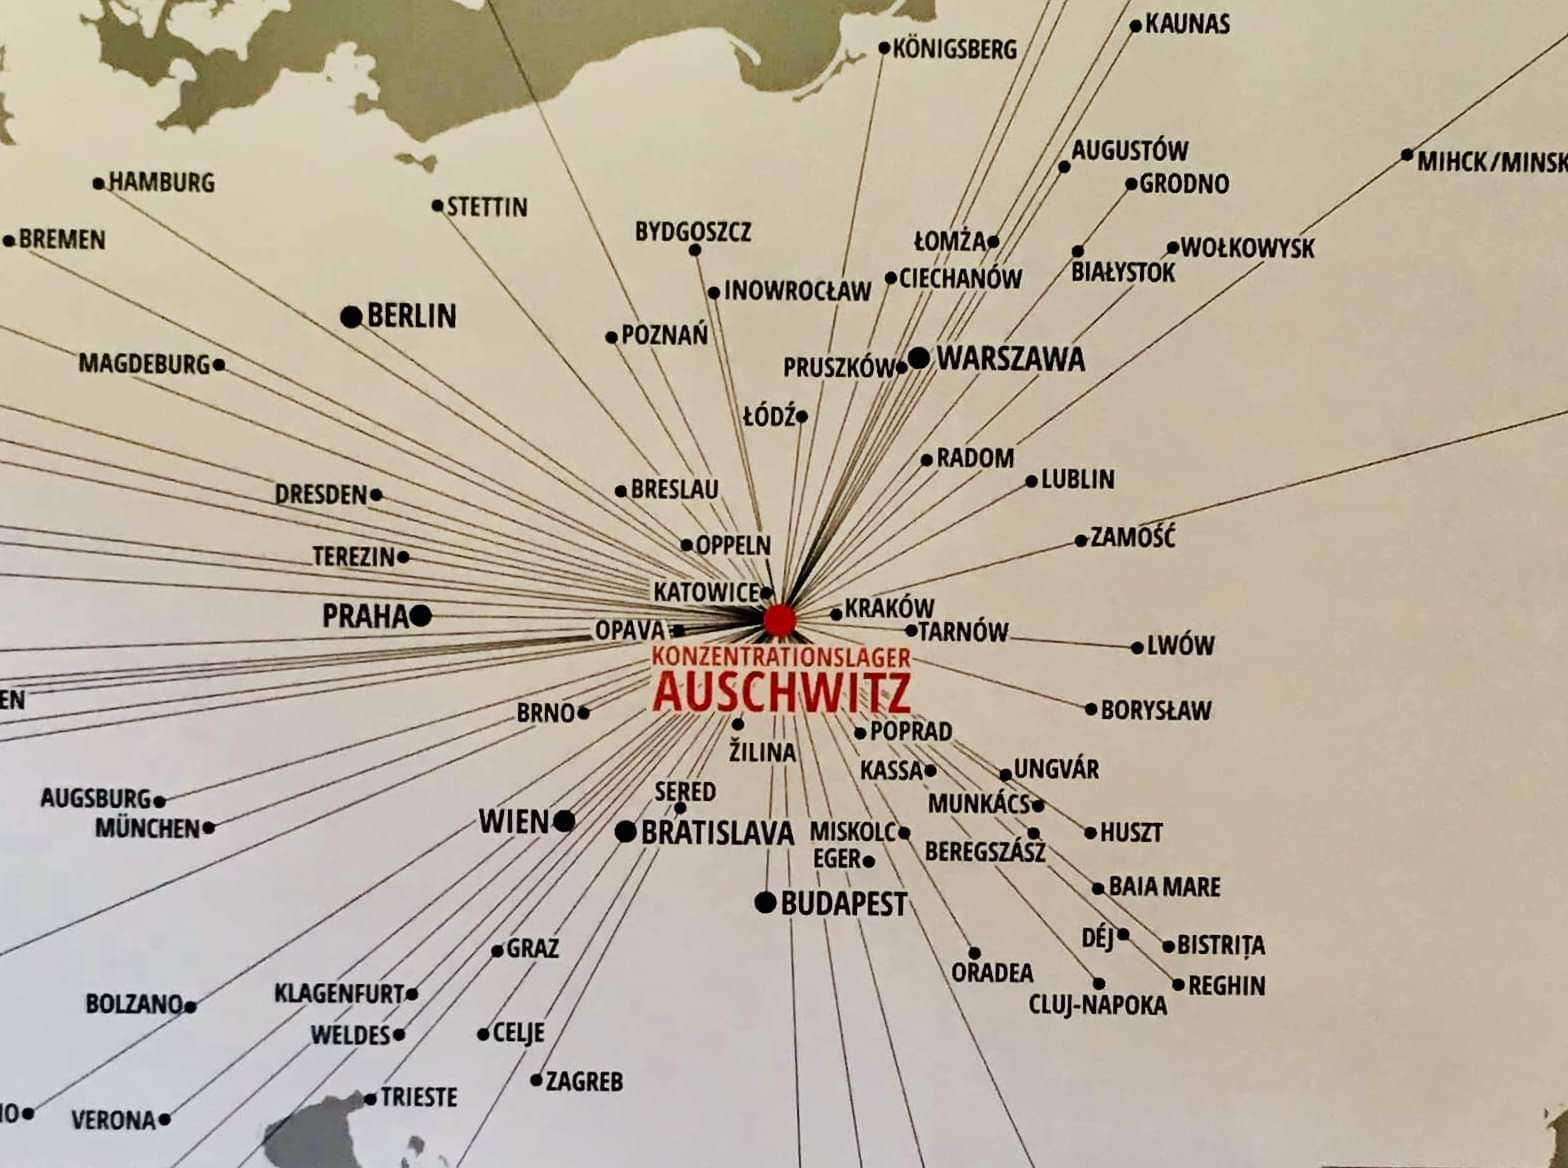 For European Jews, all roads led to Auschwitz